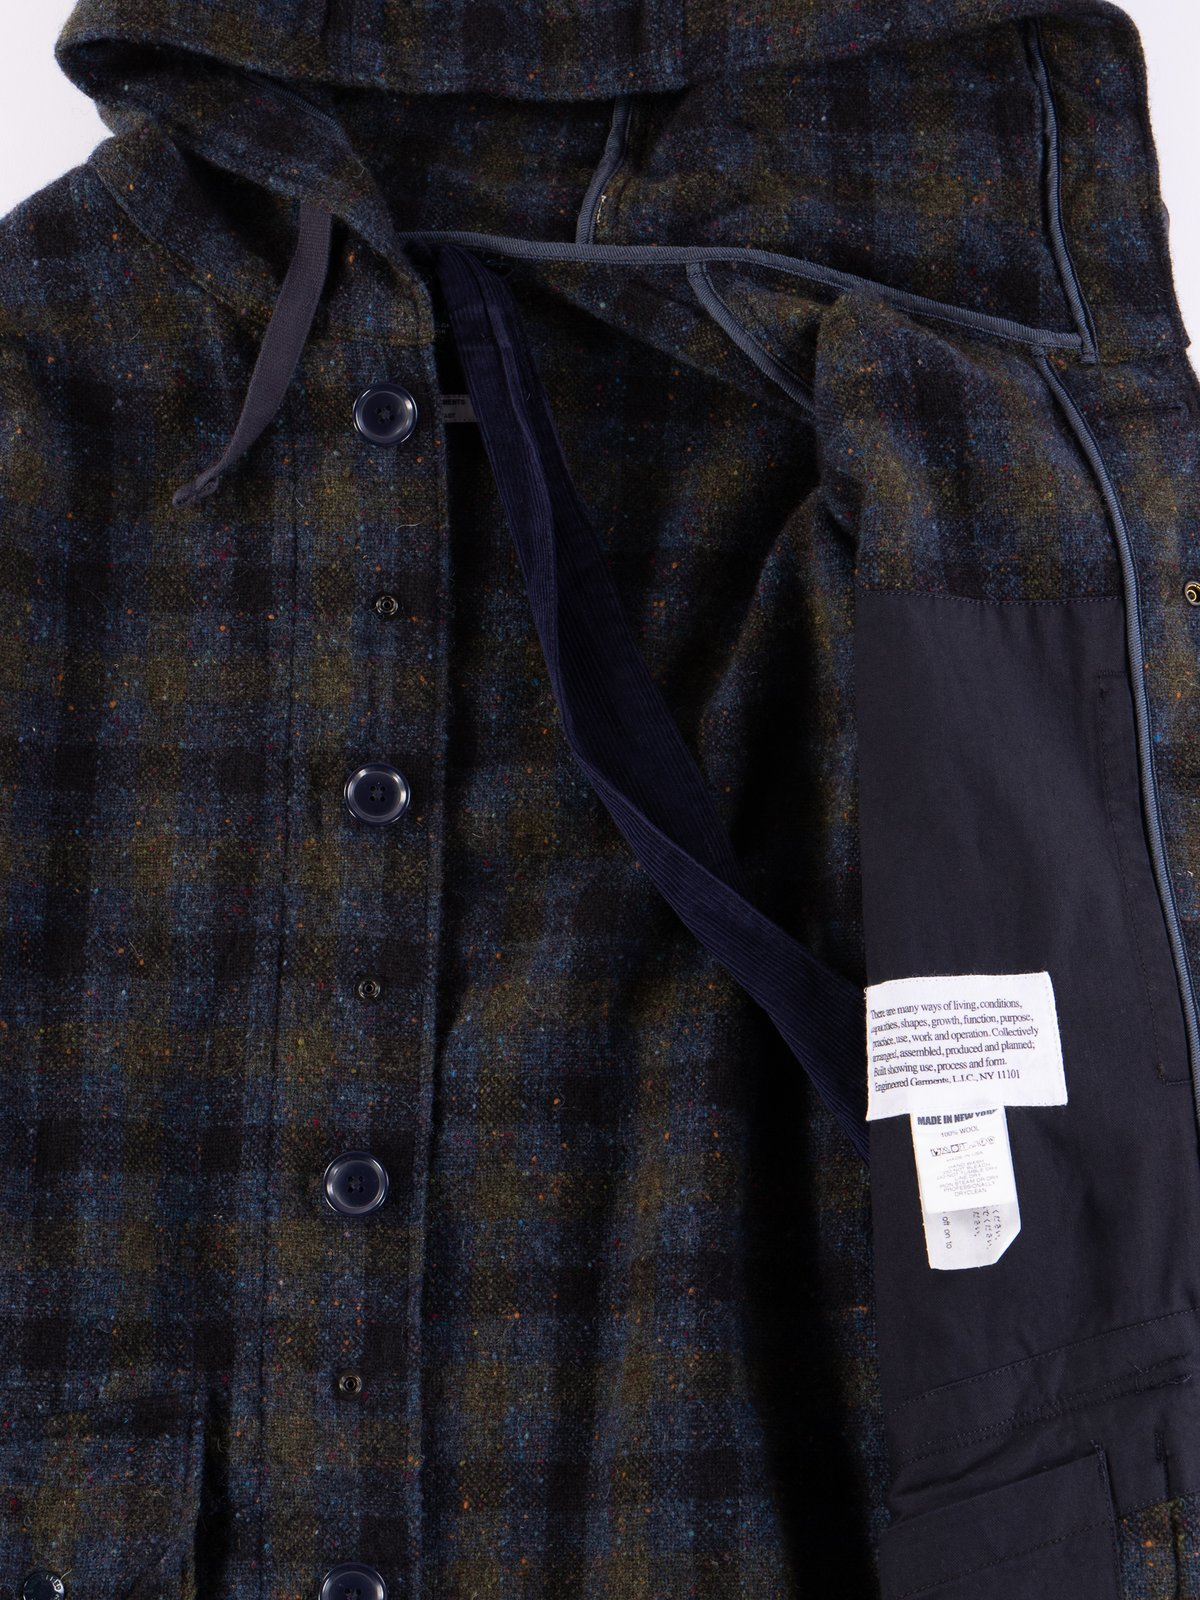 Navy Check Donegal Wool Tweed Madison Parka - Image 9